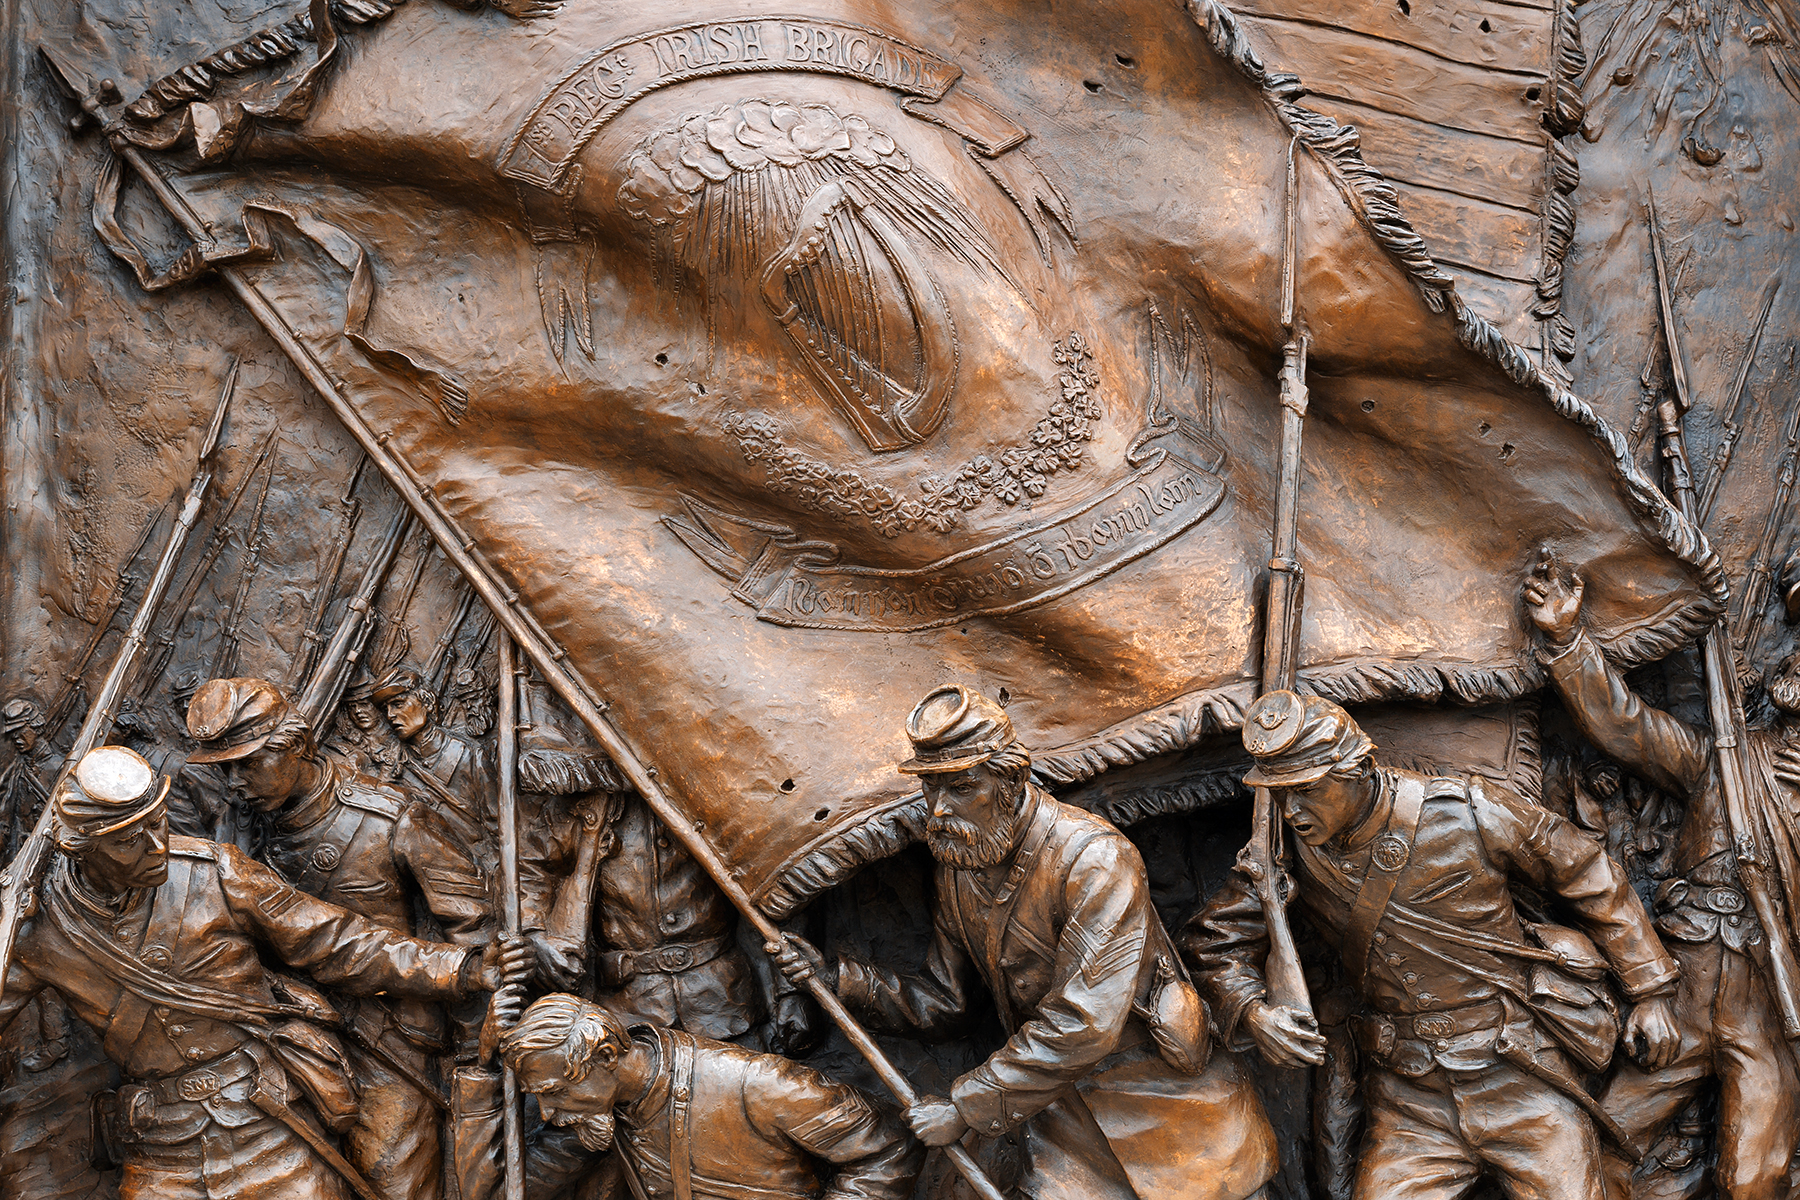 Irish Brigade Monument Close-up, America, Relief, Shadows, Shadow, HQ Photo